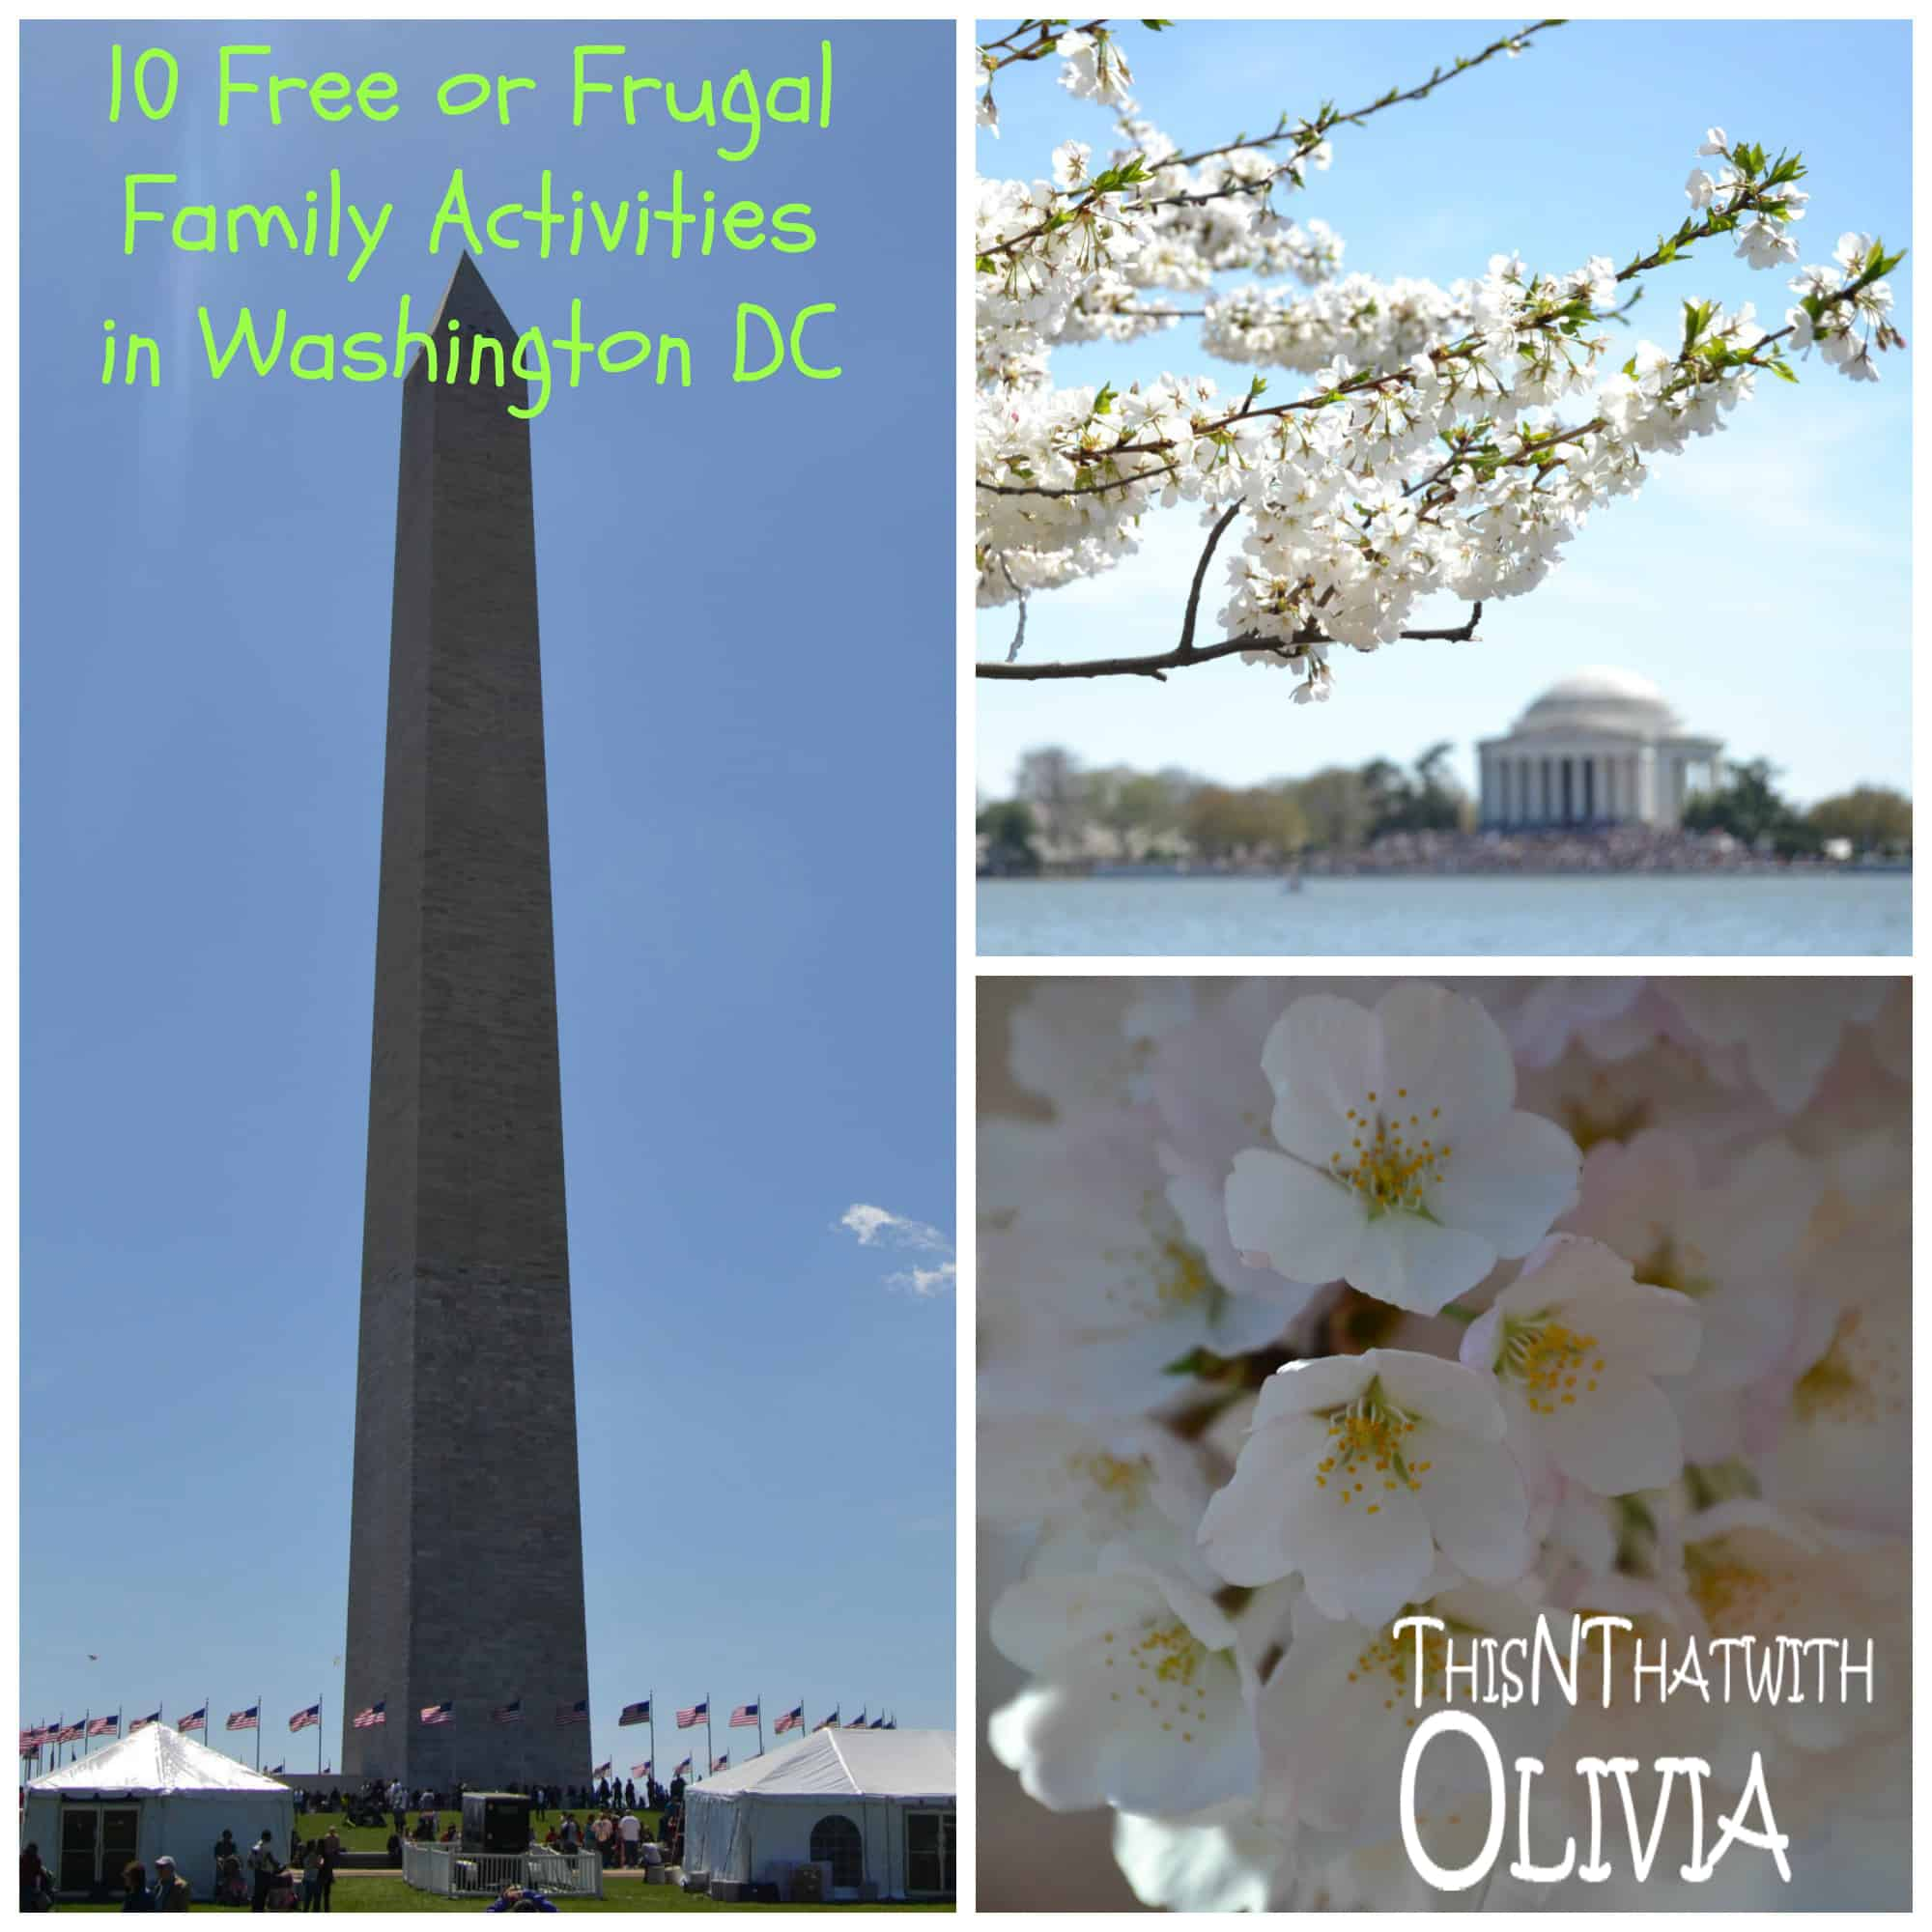 10 Free or Frugal Activities in DC